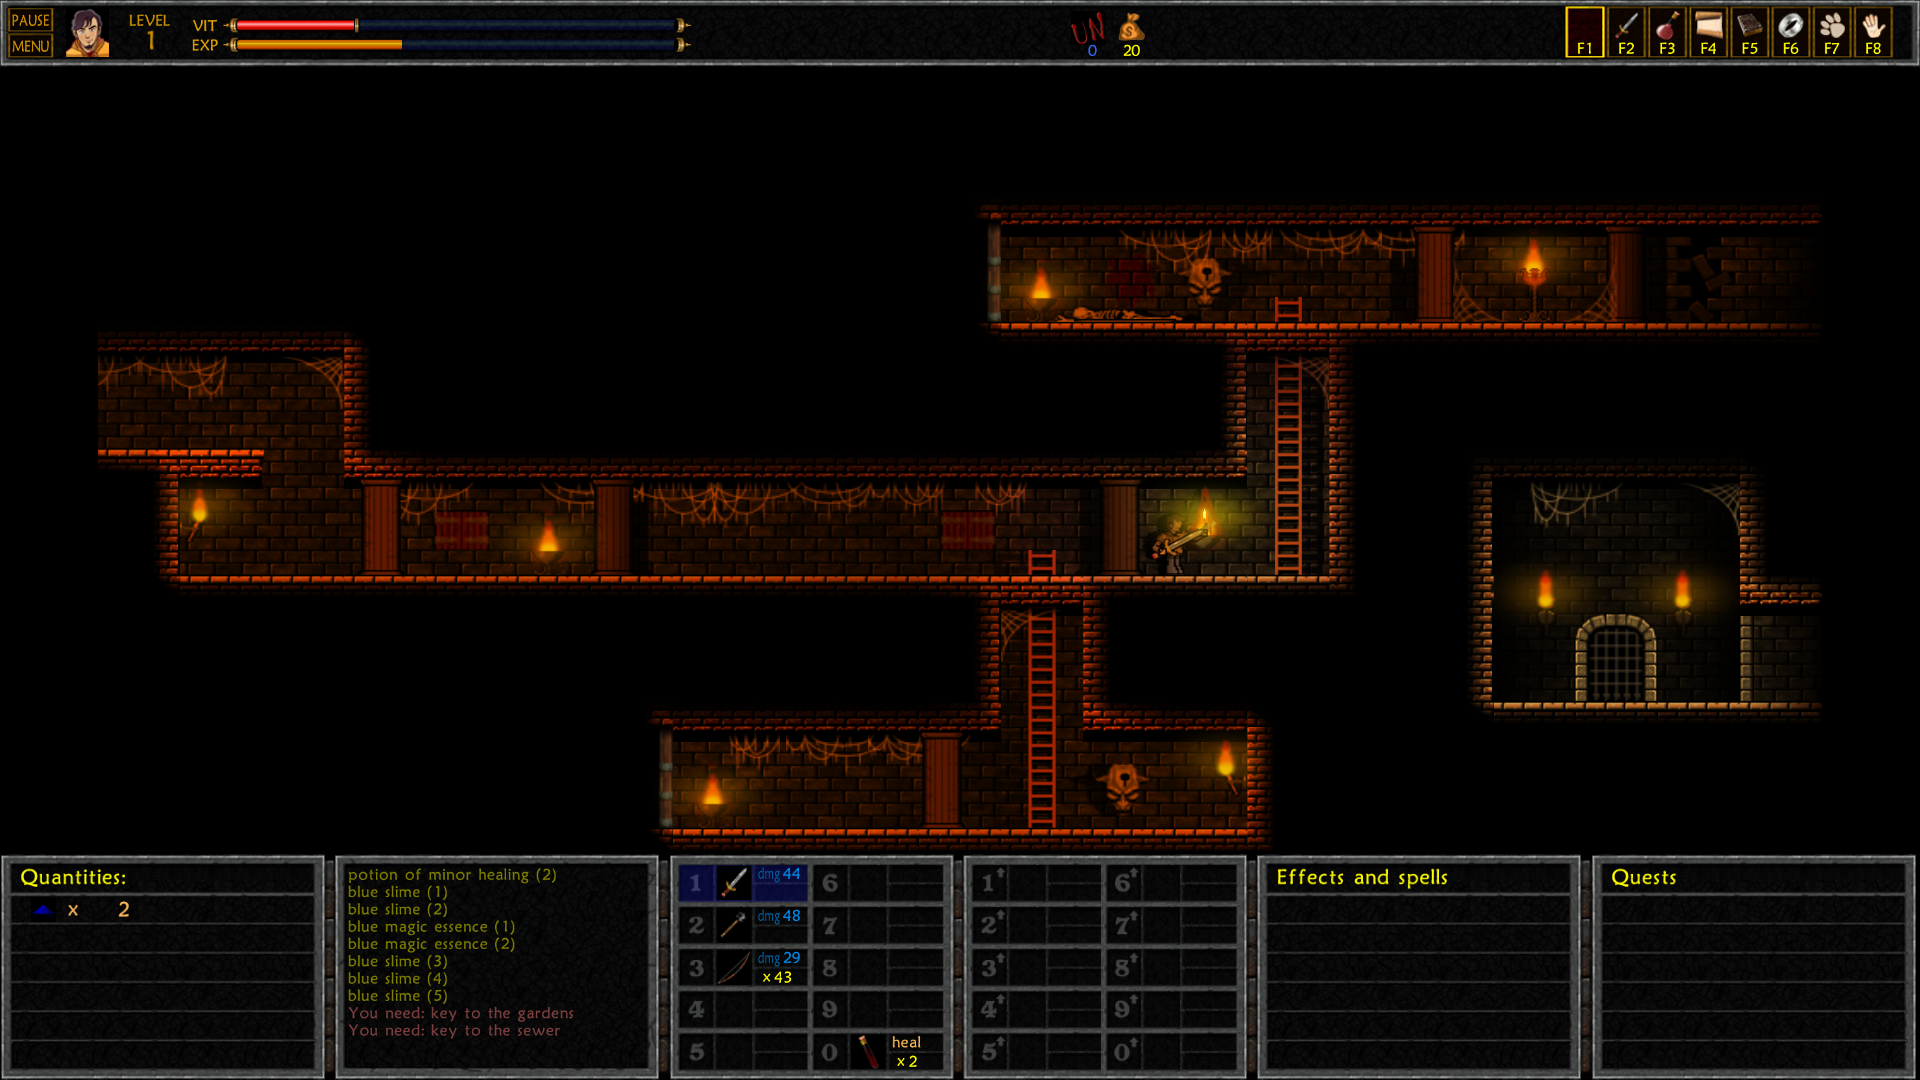 Figure 16 - This dungeon crawler has beautiful graphics and lighting effects